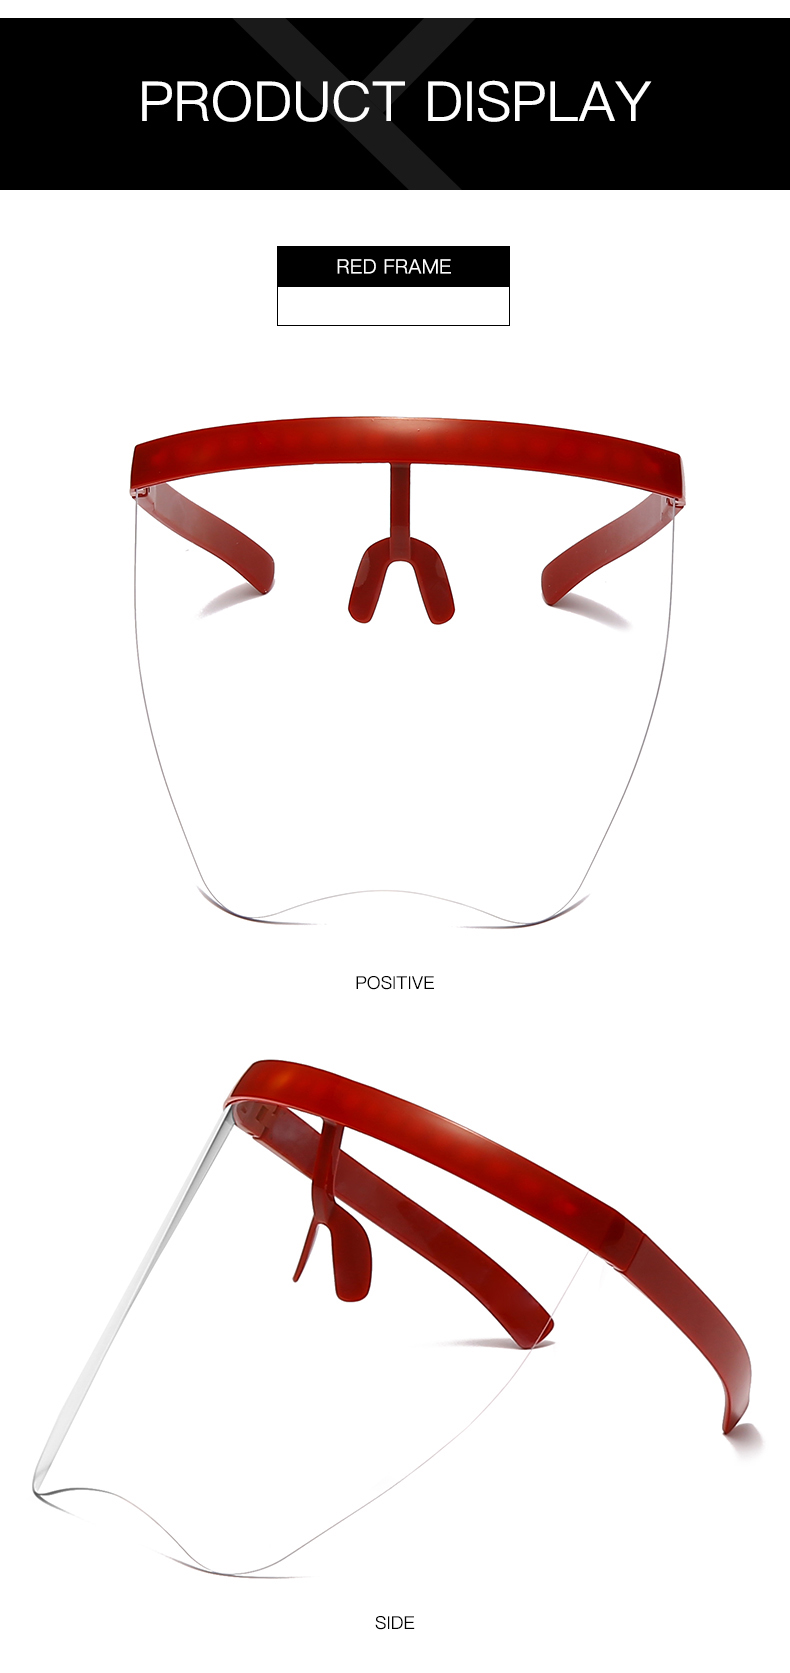 Big  size  can covered full face   one piece lens  windproof  oversized visor  sunglasses